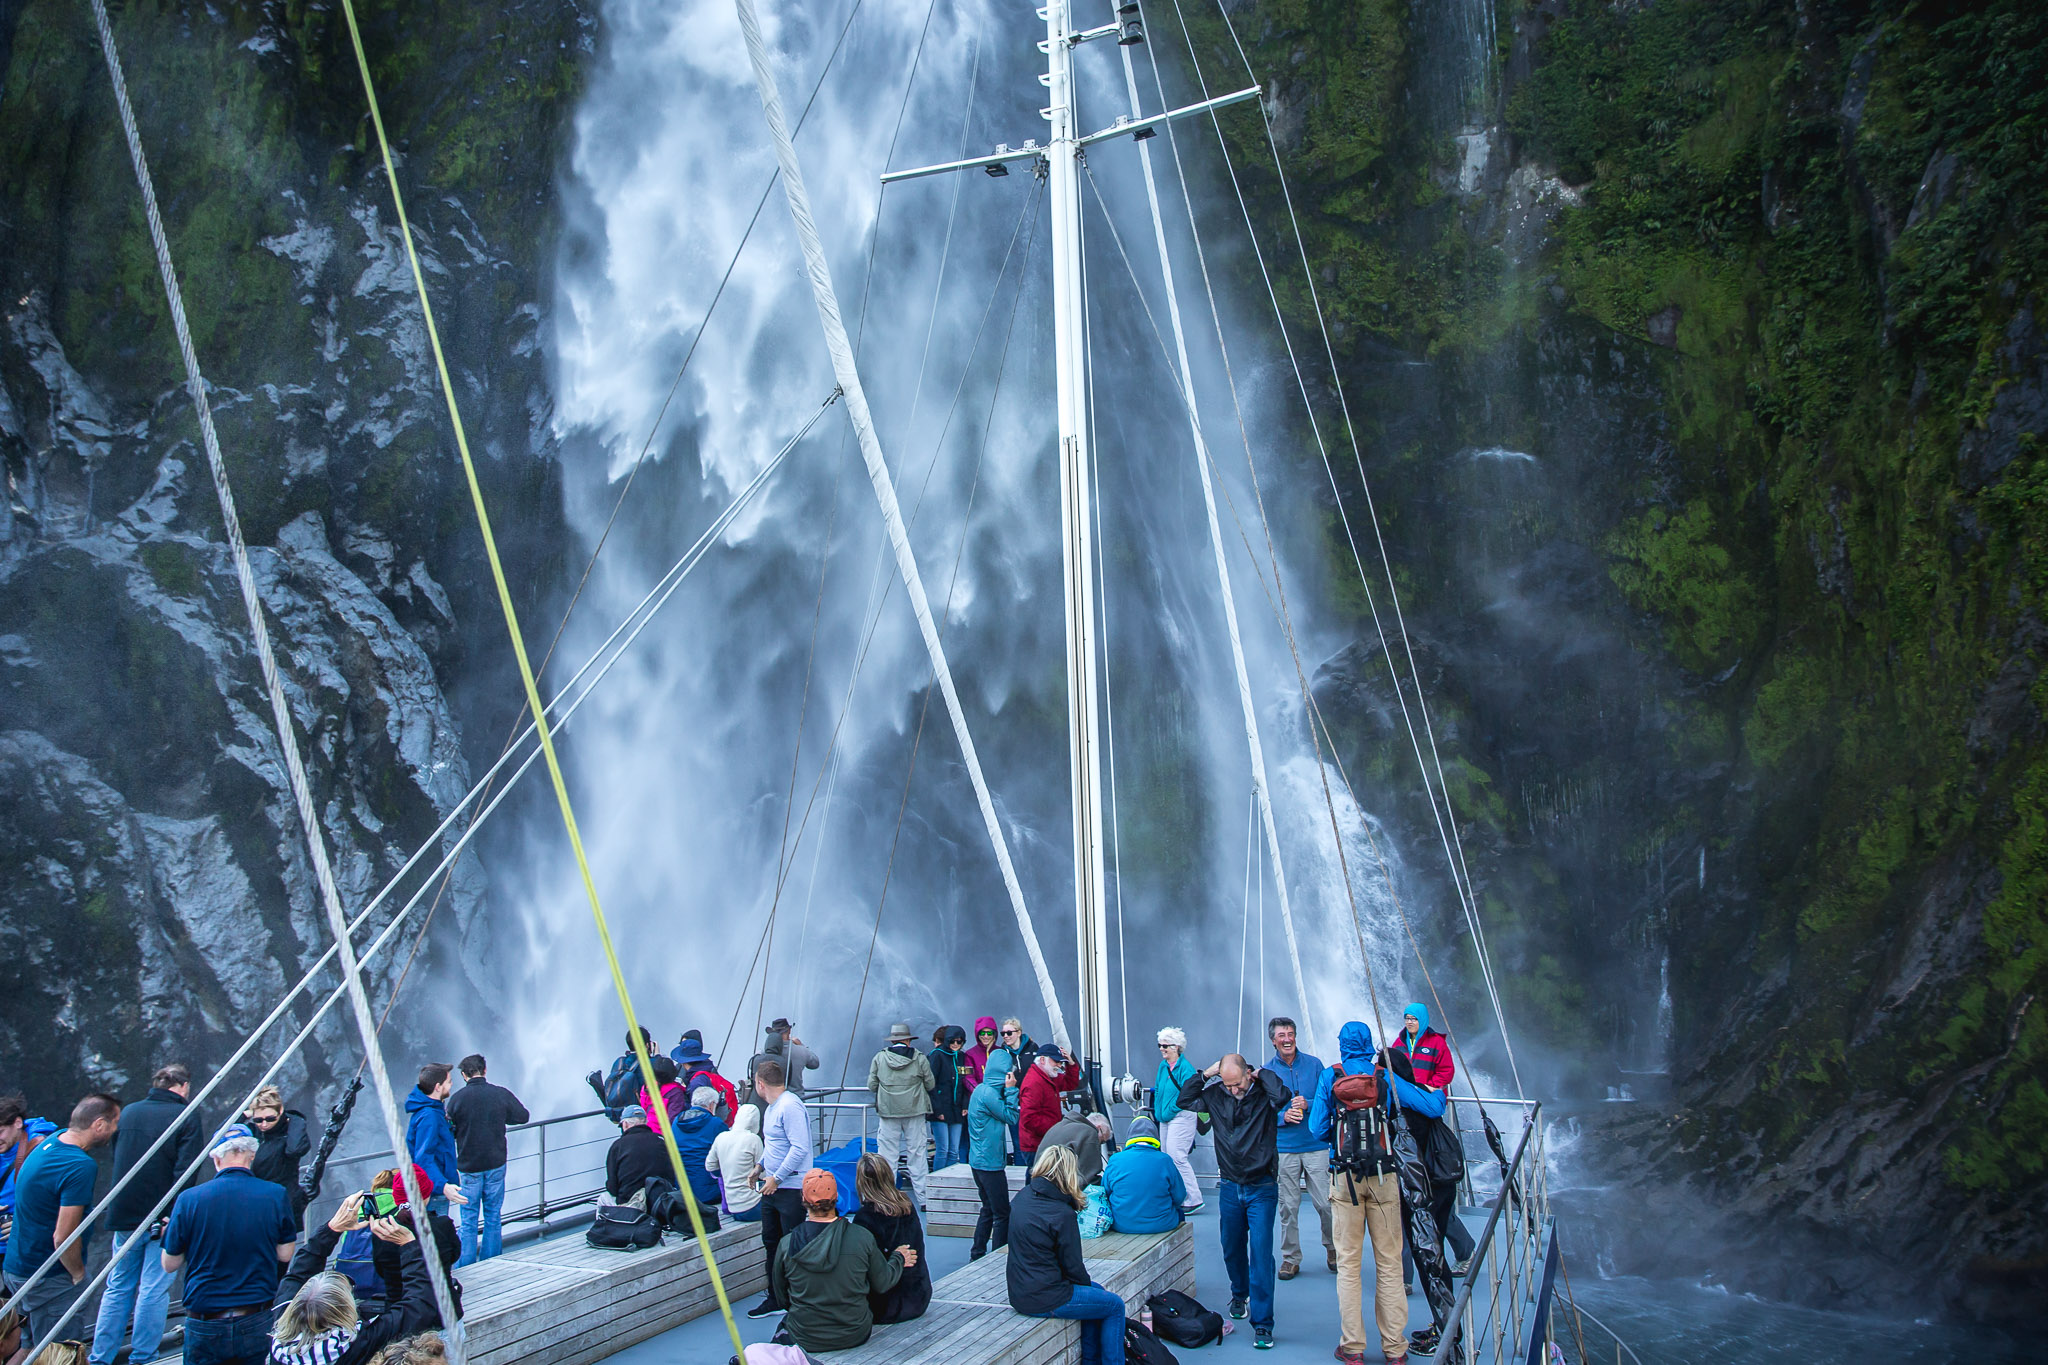 Waterfall in Milford Sound, Fiordland, New Zealand attractions, New Zealand activities